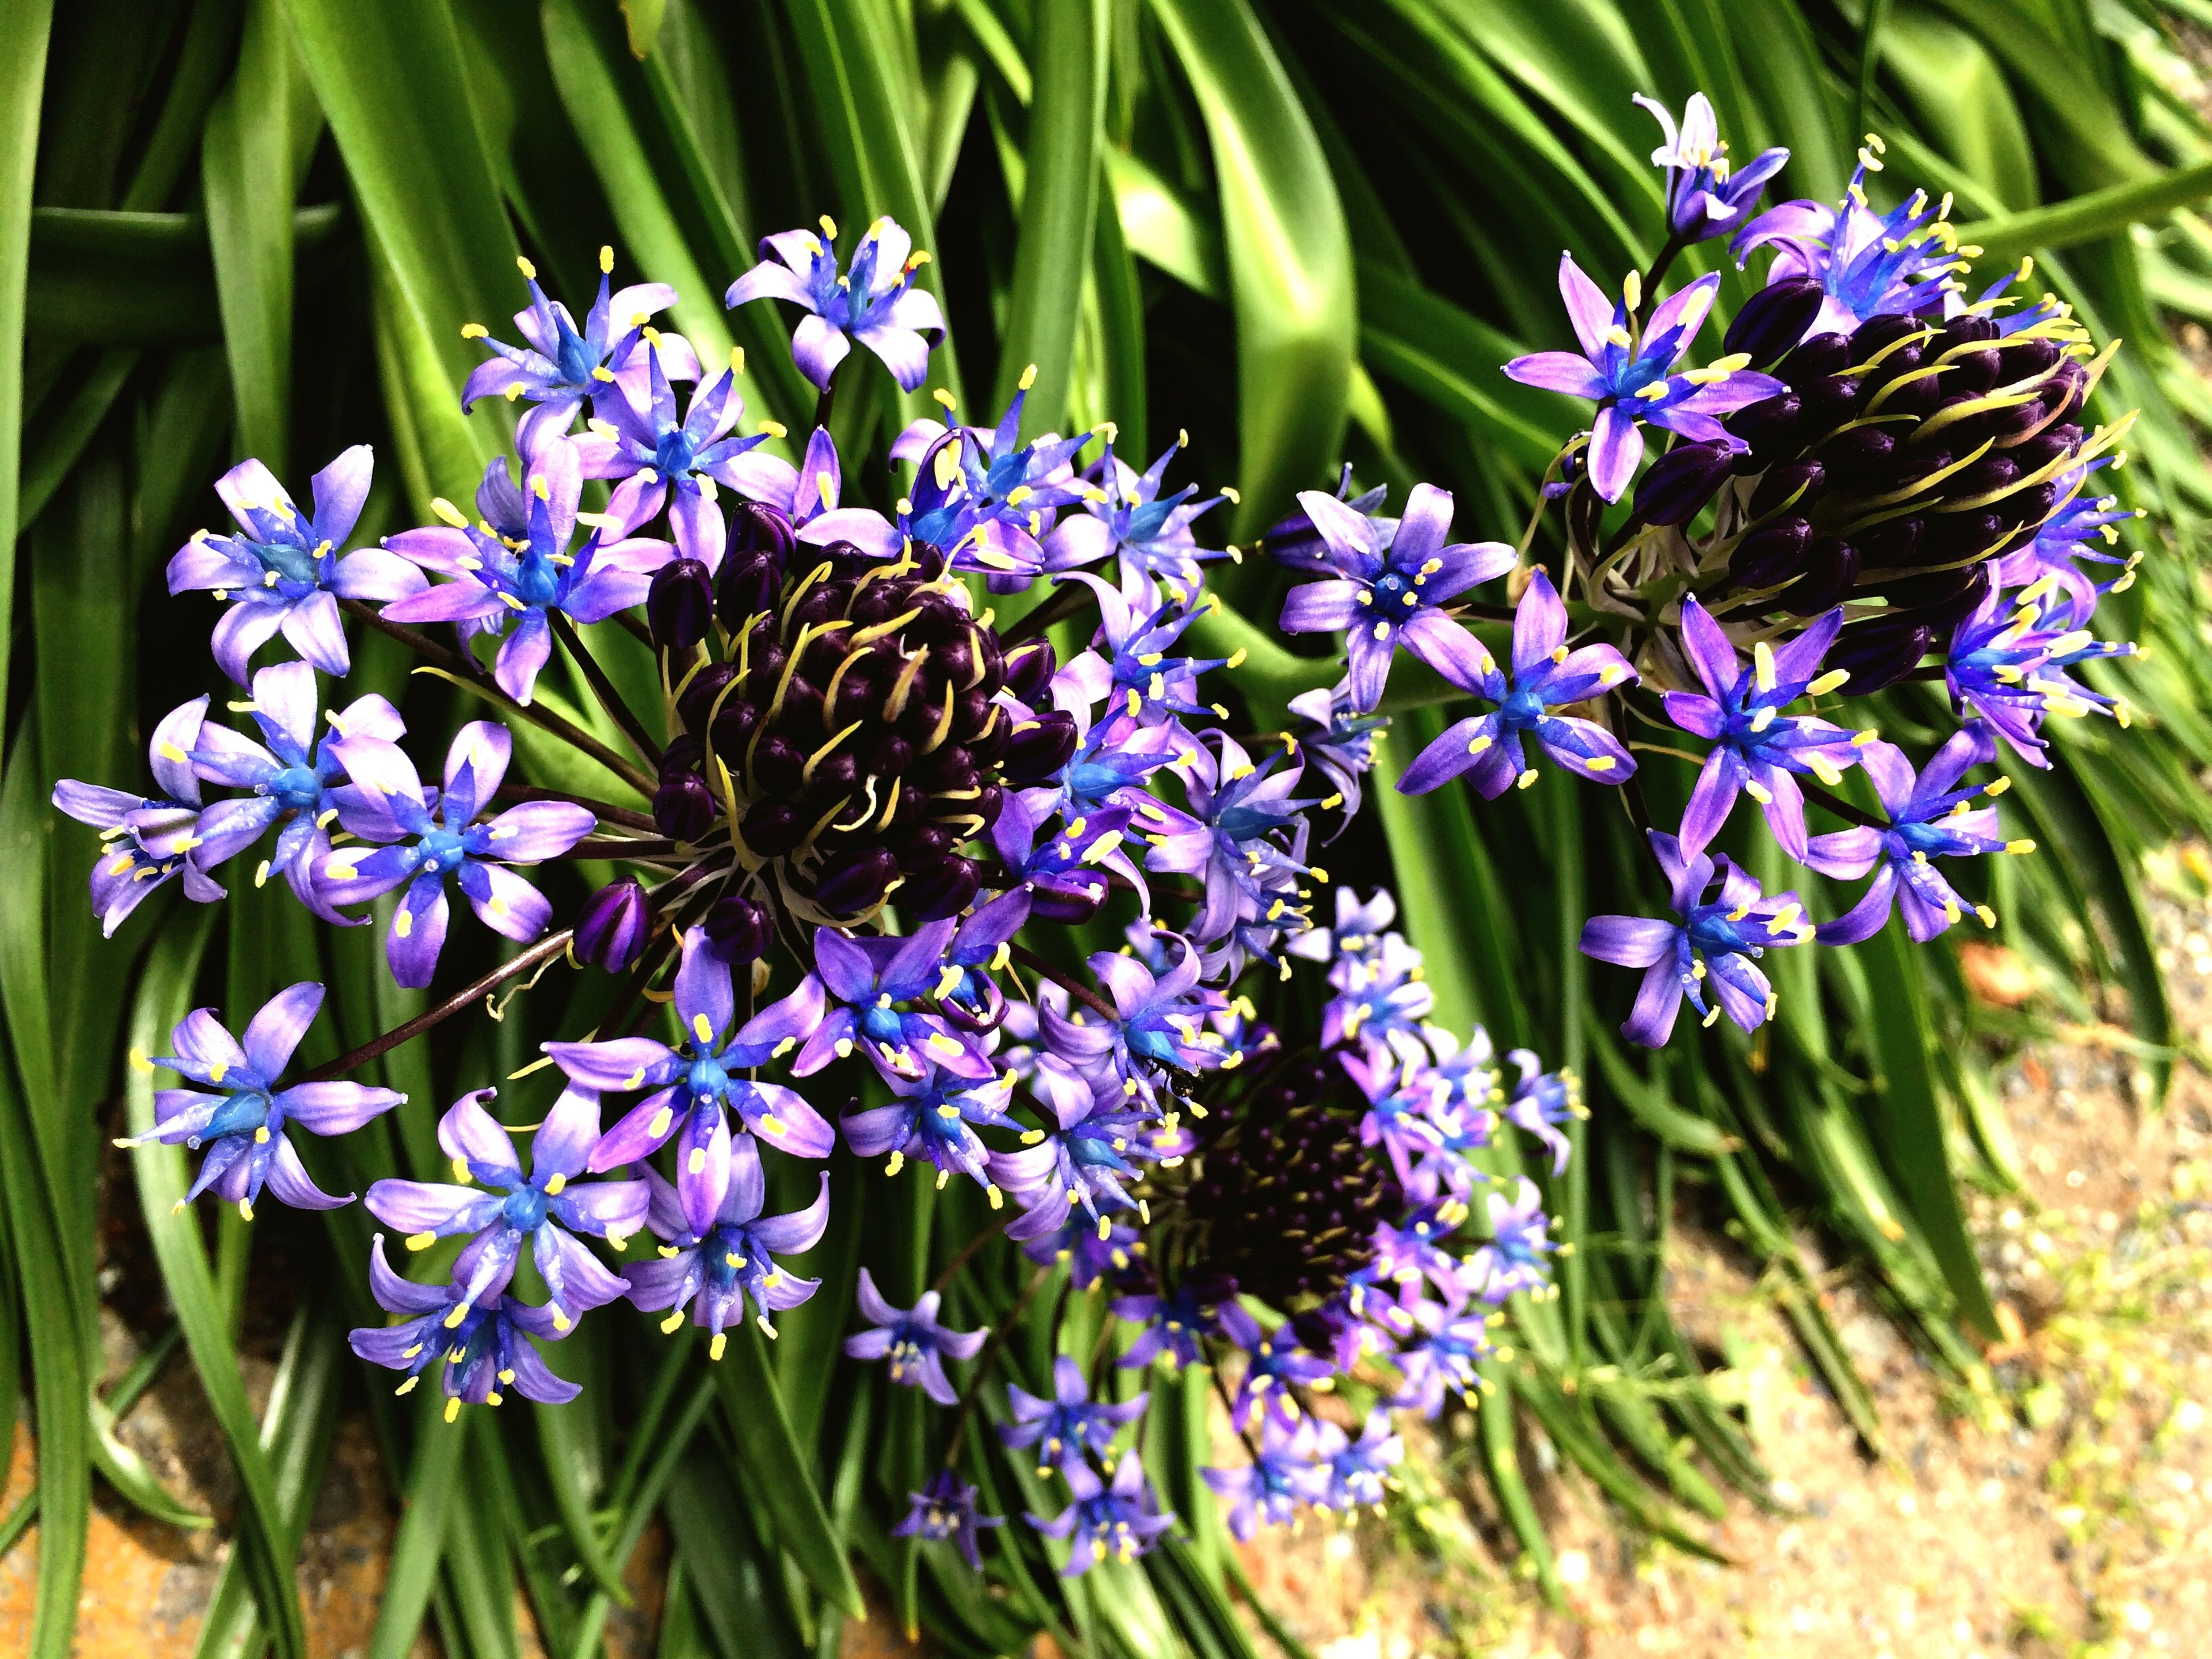 flower, purple, freshness, growth, plant, fragility, petal, beauty in nature, nature, blooming, close-up, flower head, blue, leaf, high angle view, focus on foreground, green color, field, outdoors, day